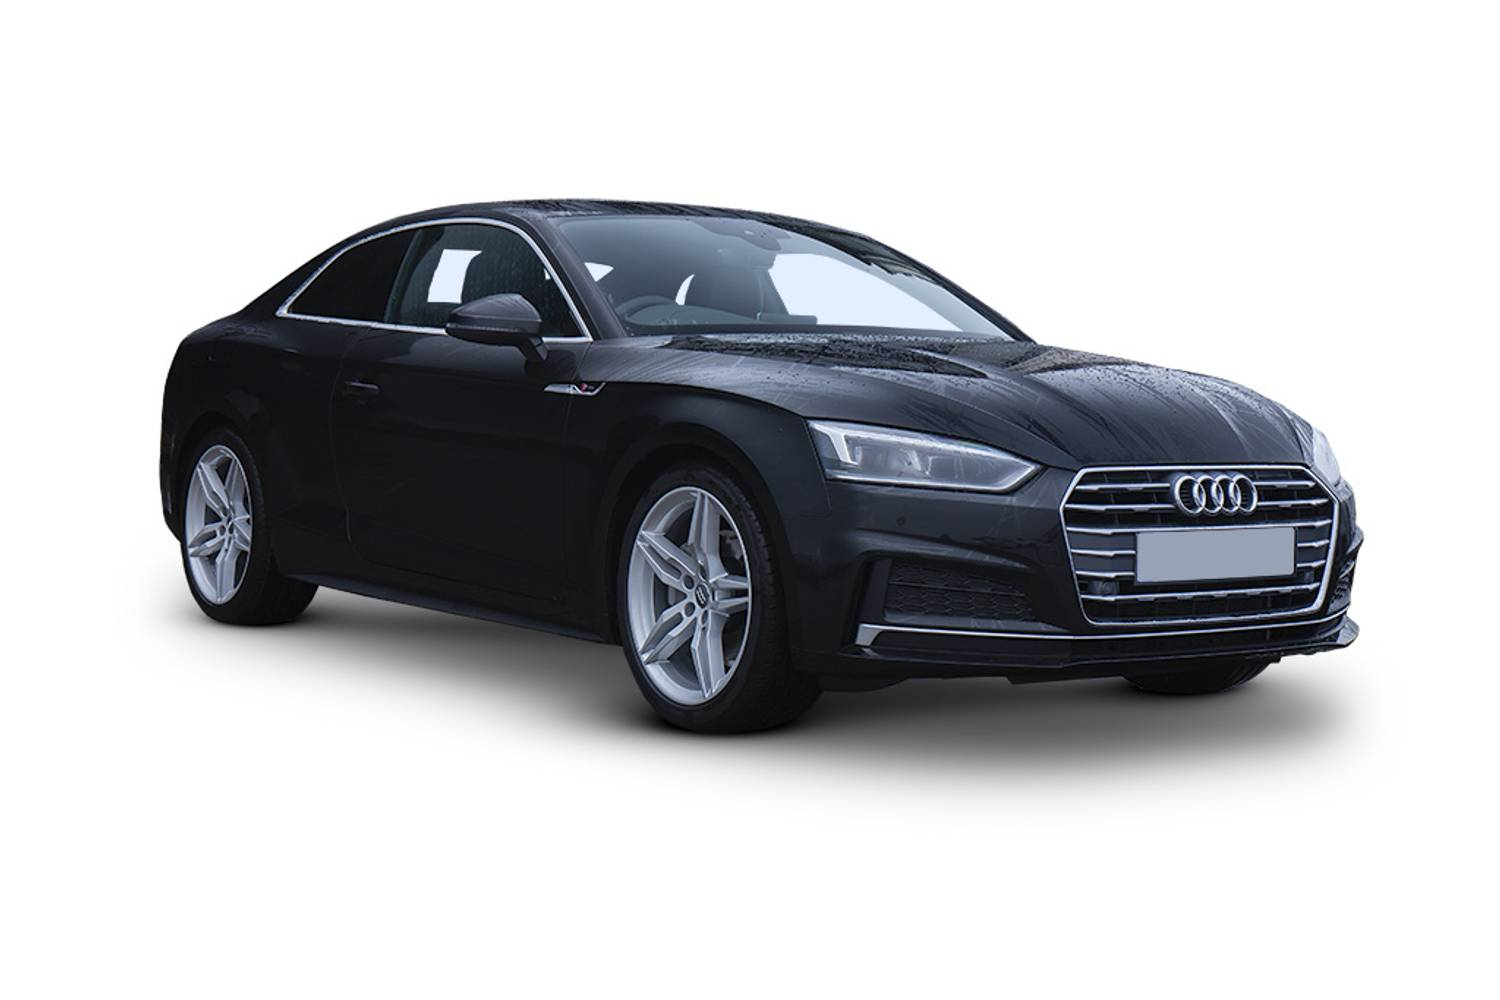 new audi a5 coupe s5 quattro 2-door tiptronic (2016-) for